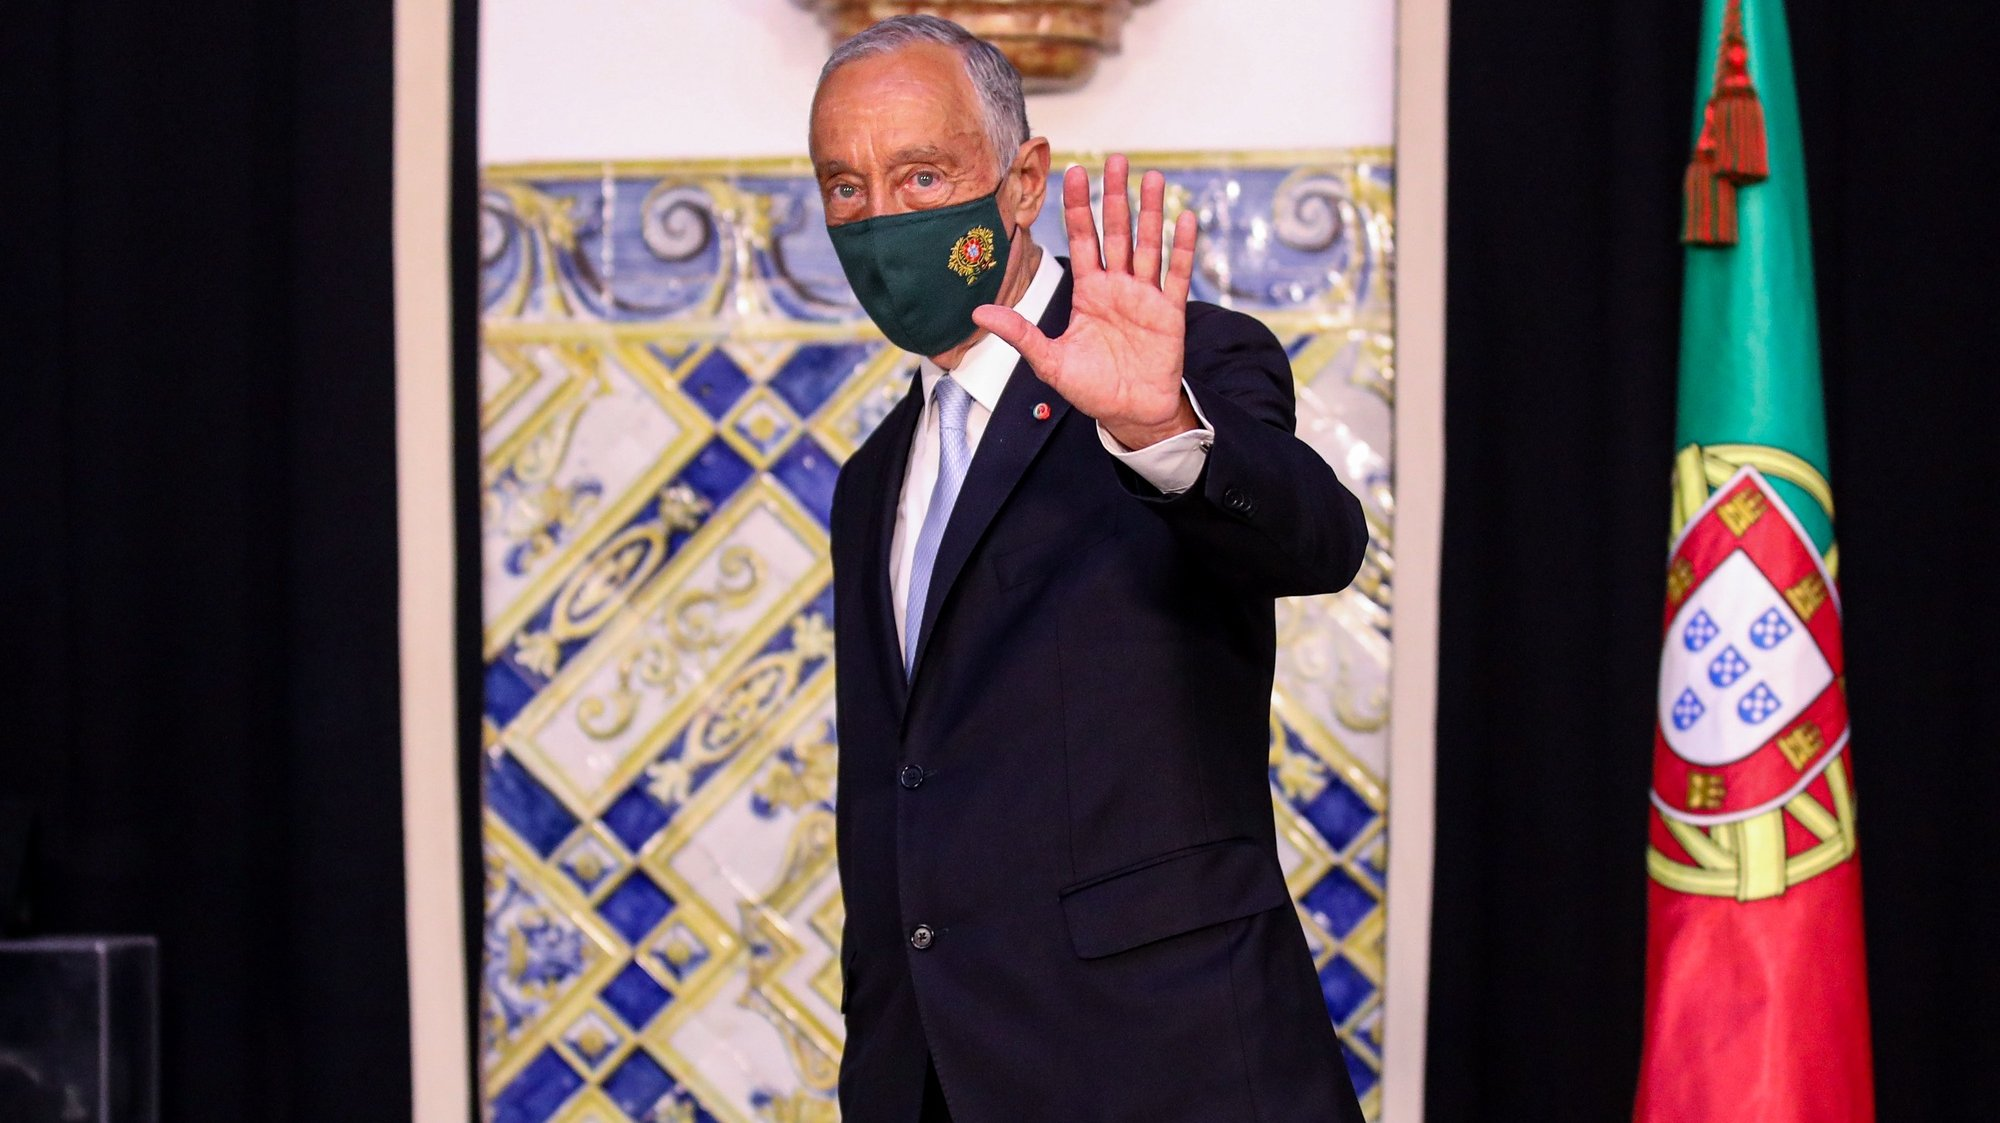 Portugal's President Marcelo Rebelo de Sousa waves after received from the Secretary General of the Presidency of the Republic (L) the Band of the Three Orders, symbol of the President of the Republic and Grand Master of the Portuguese Honorific Orders as he arrives to Belem Palace, after his swearing ceremony for a second term as President of the Republic, in Lisbon, Portugal, 09 March 2021. Reelected in the January 24 presidential elections with 60.67% of the votes cast, the 72-year-old retired law professor, a former constituent deputy, will be sworn in on the original of the Constitution of the Portuguese Republic. ANDRE KOSTERS/LUSA